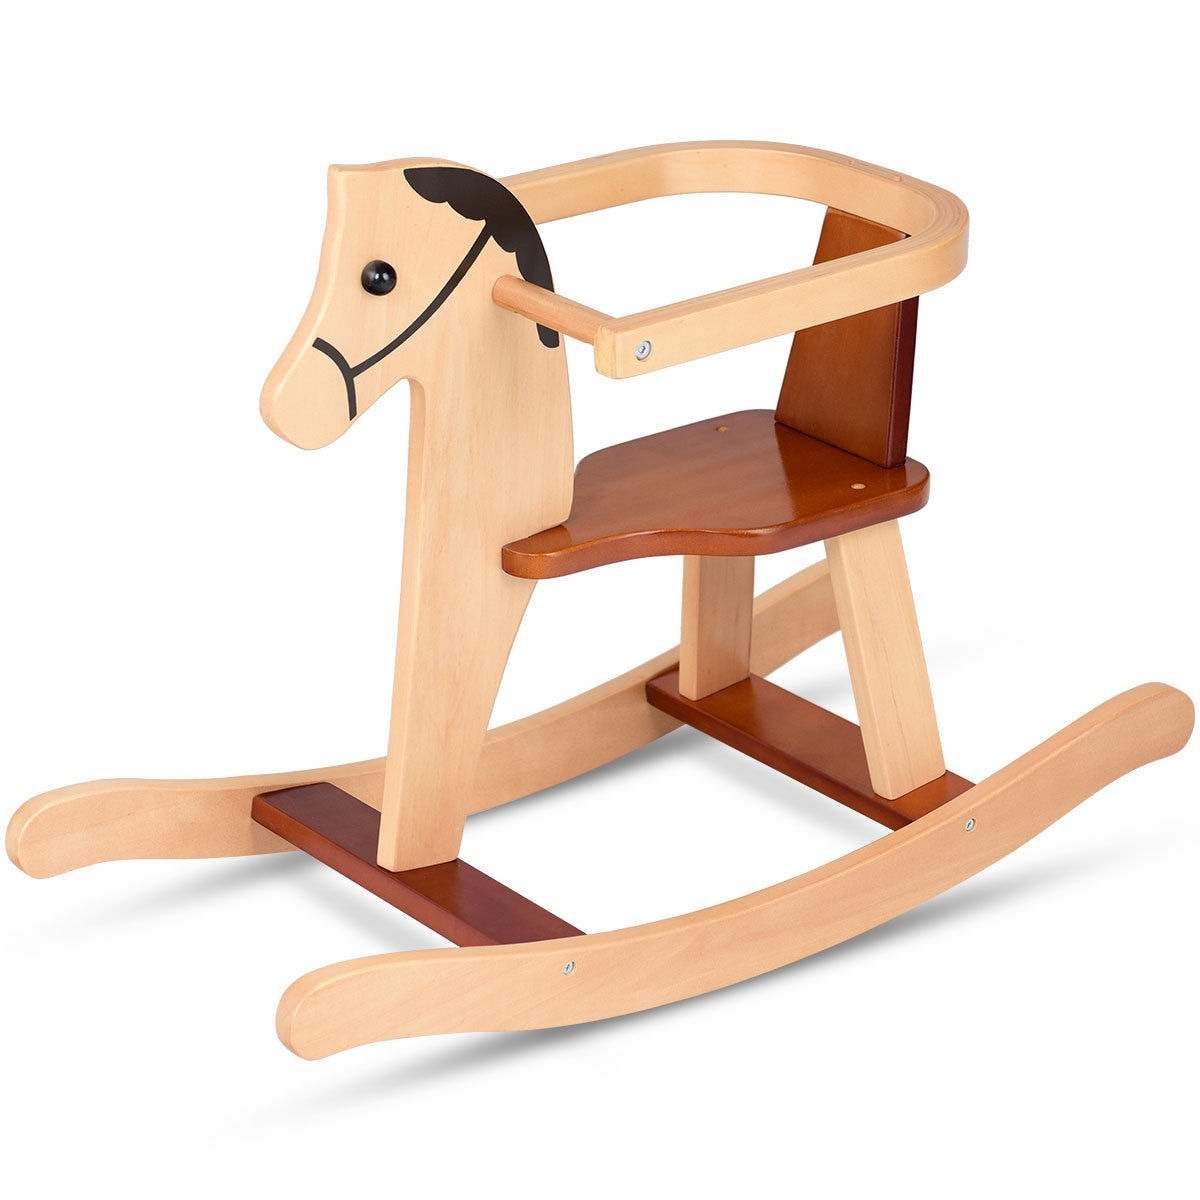 animal rocking chair sliding shower chairs for elderly shop gymax baby kids toy wooden horse rider bar security boys girls as pic free shipping today overstock com 22802713